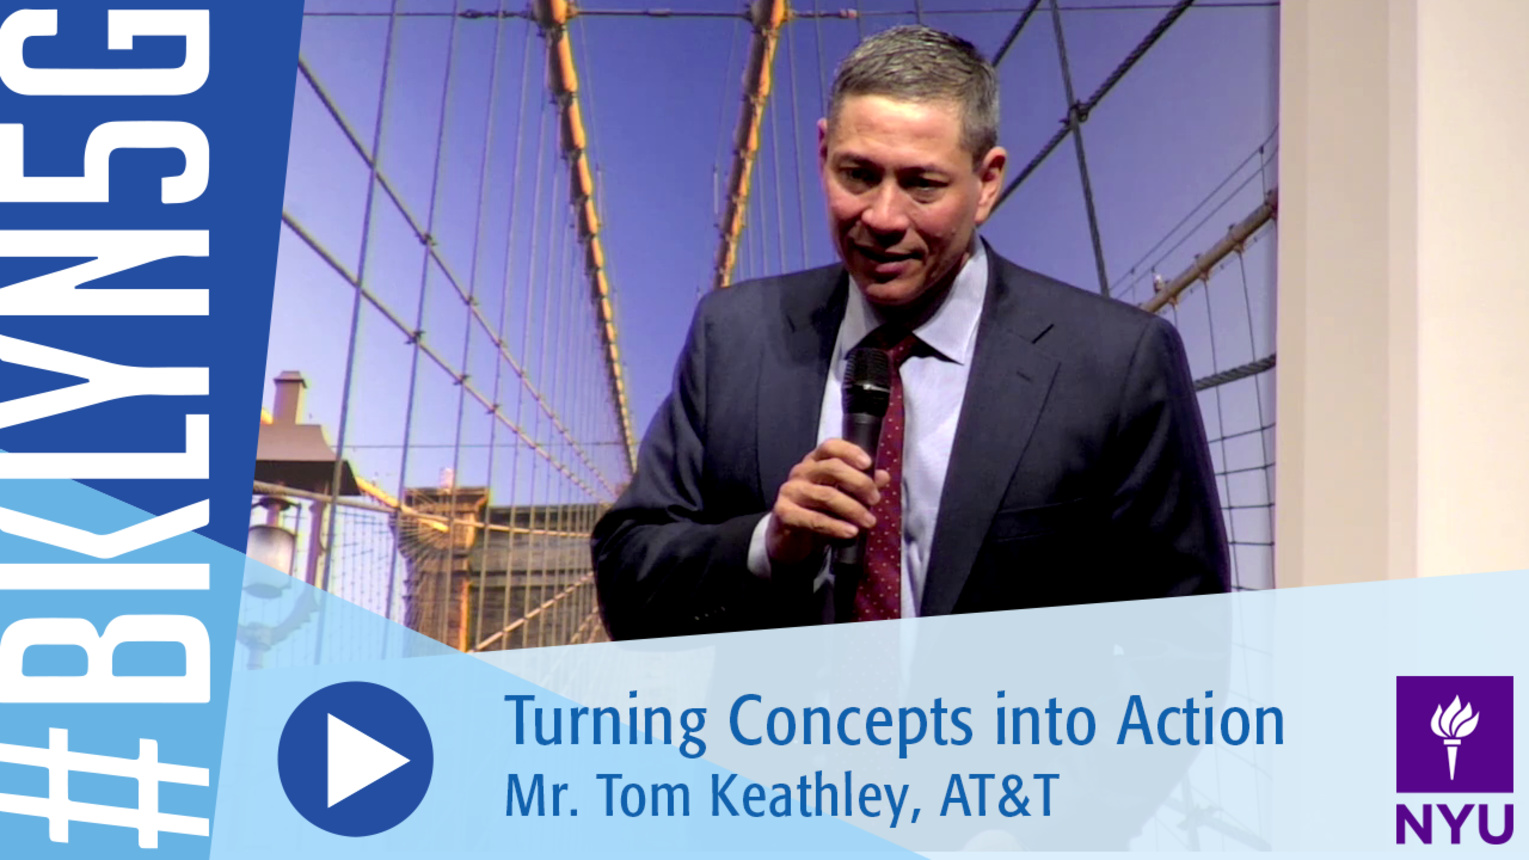 Brooklyn 5G 2016: Mr. Tom Keathley on 5G Preparation and Carrier Eco-System